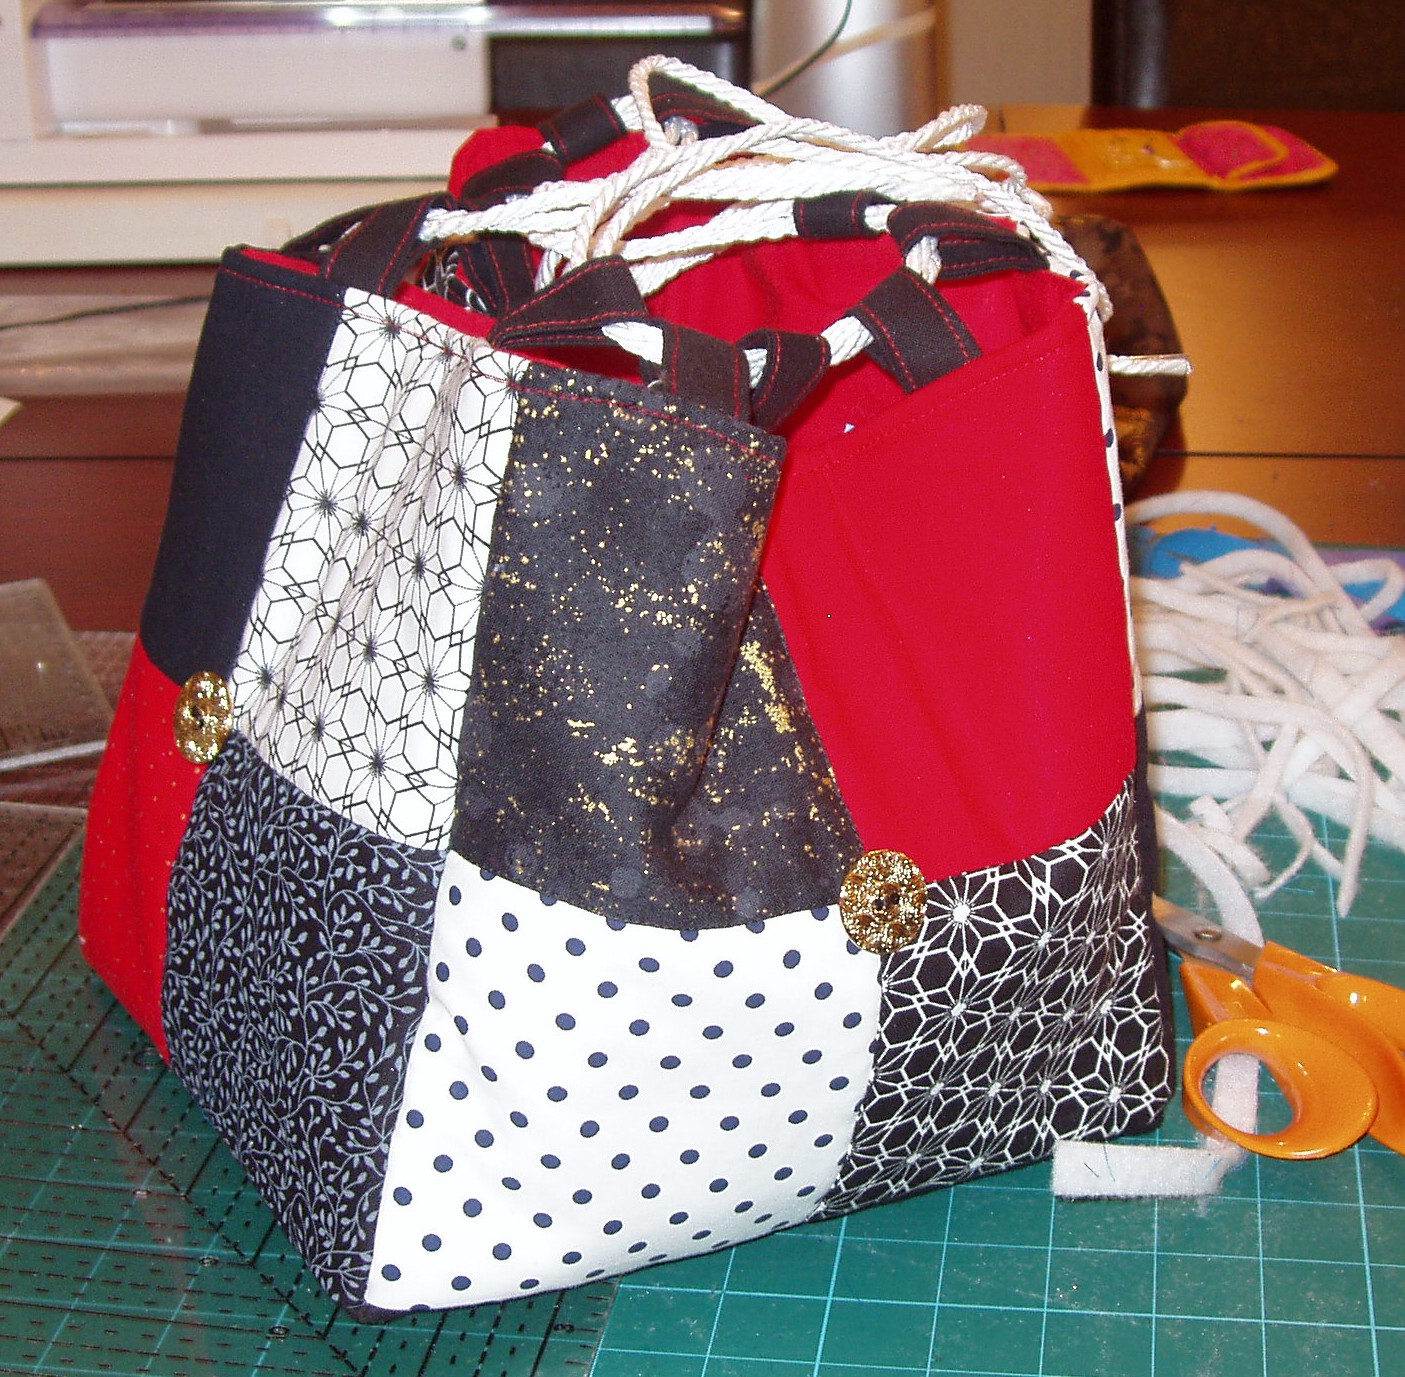 Komebukuro Bags Based On The Ones In Anese Quilt Inspirations Made Yesterday Evening At Our Work Royal Some Awaiting Drawstrings Pics